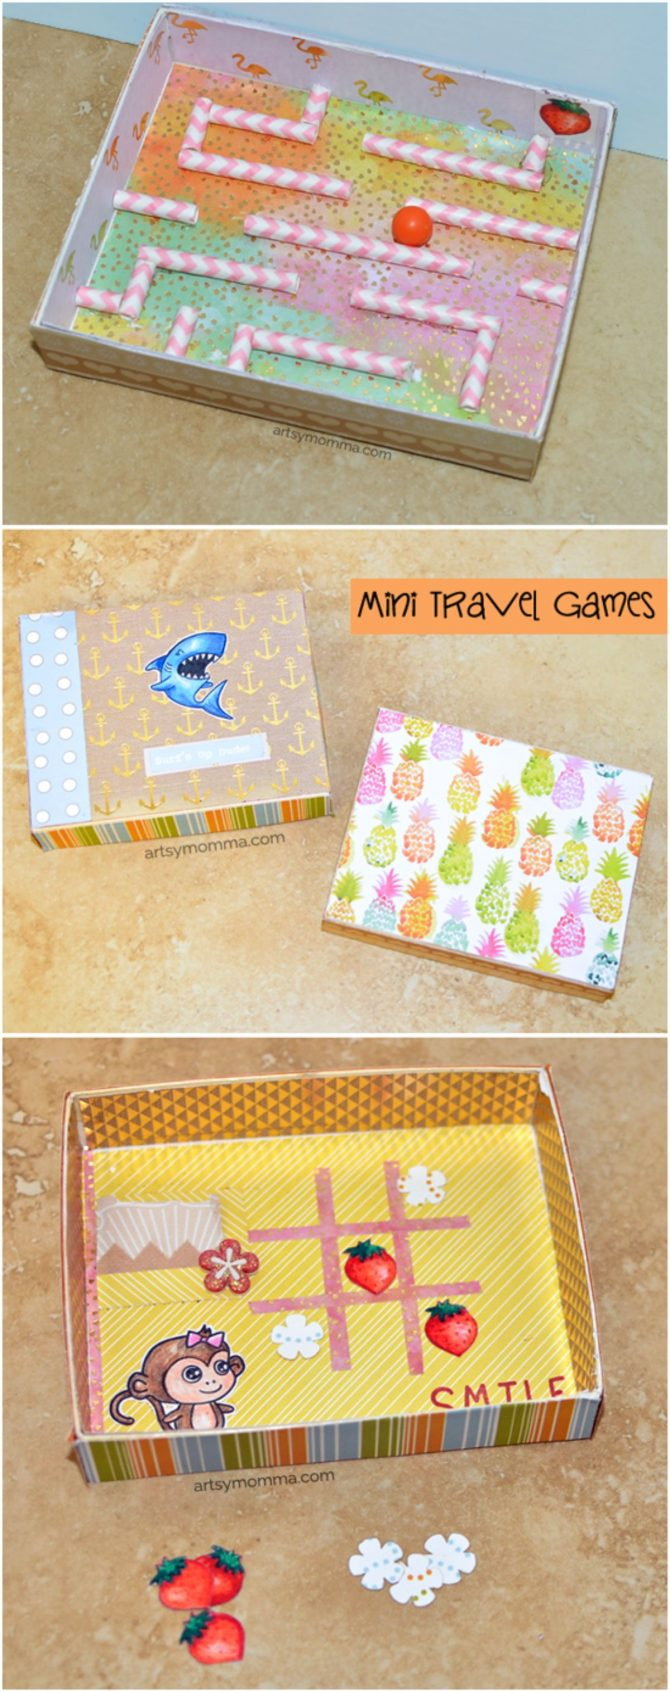 3 photos of boxed games including a marble maze, and tic tac toe